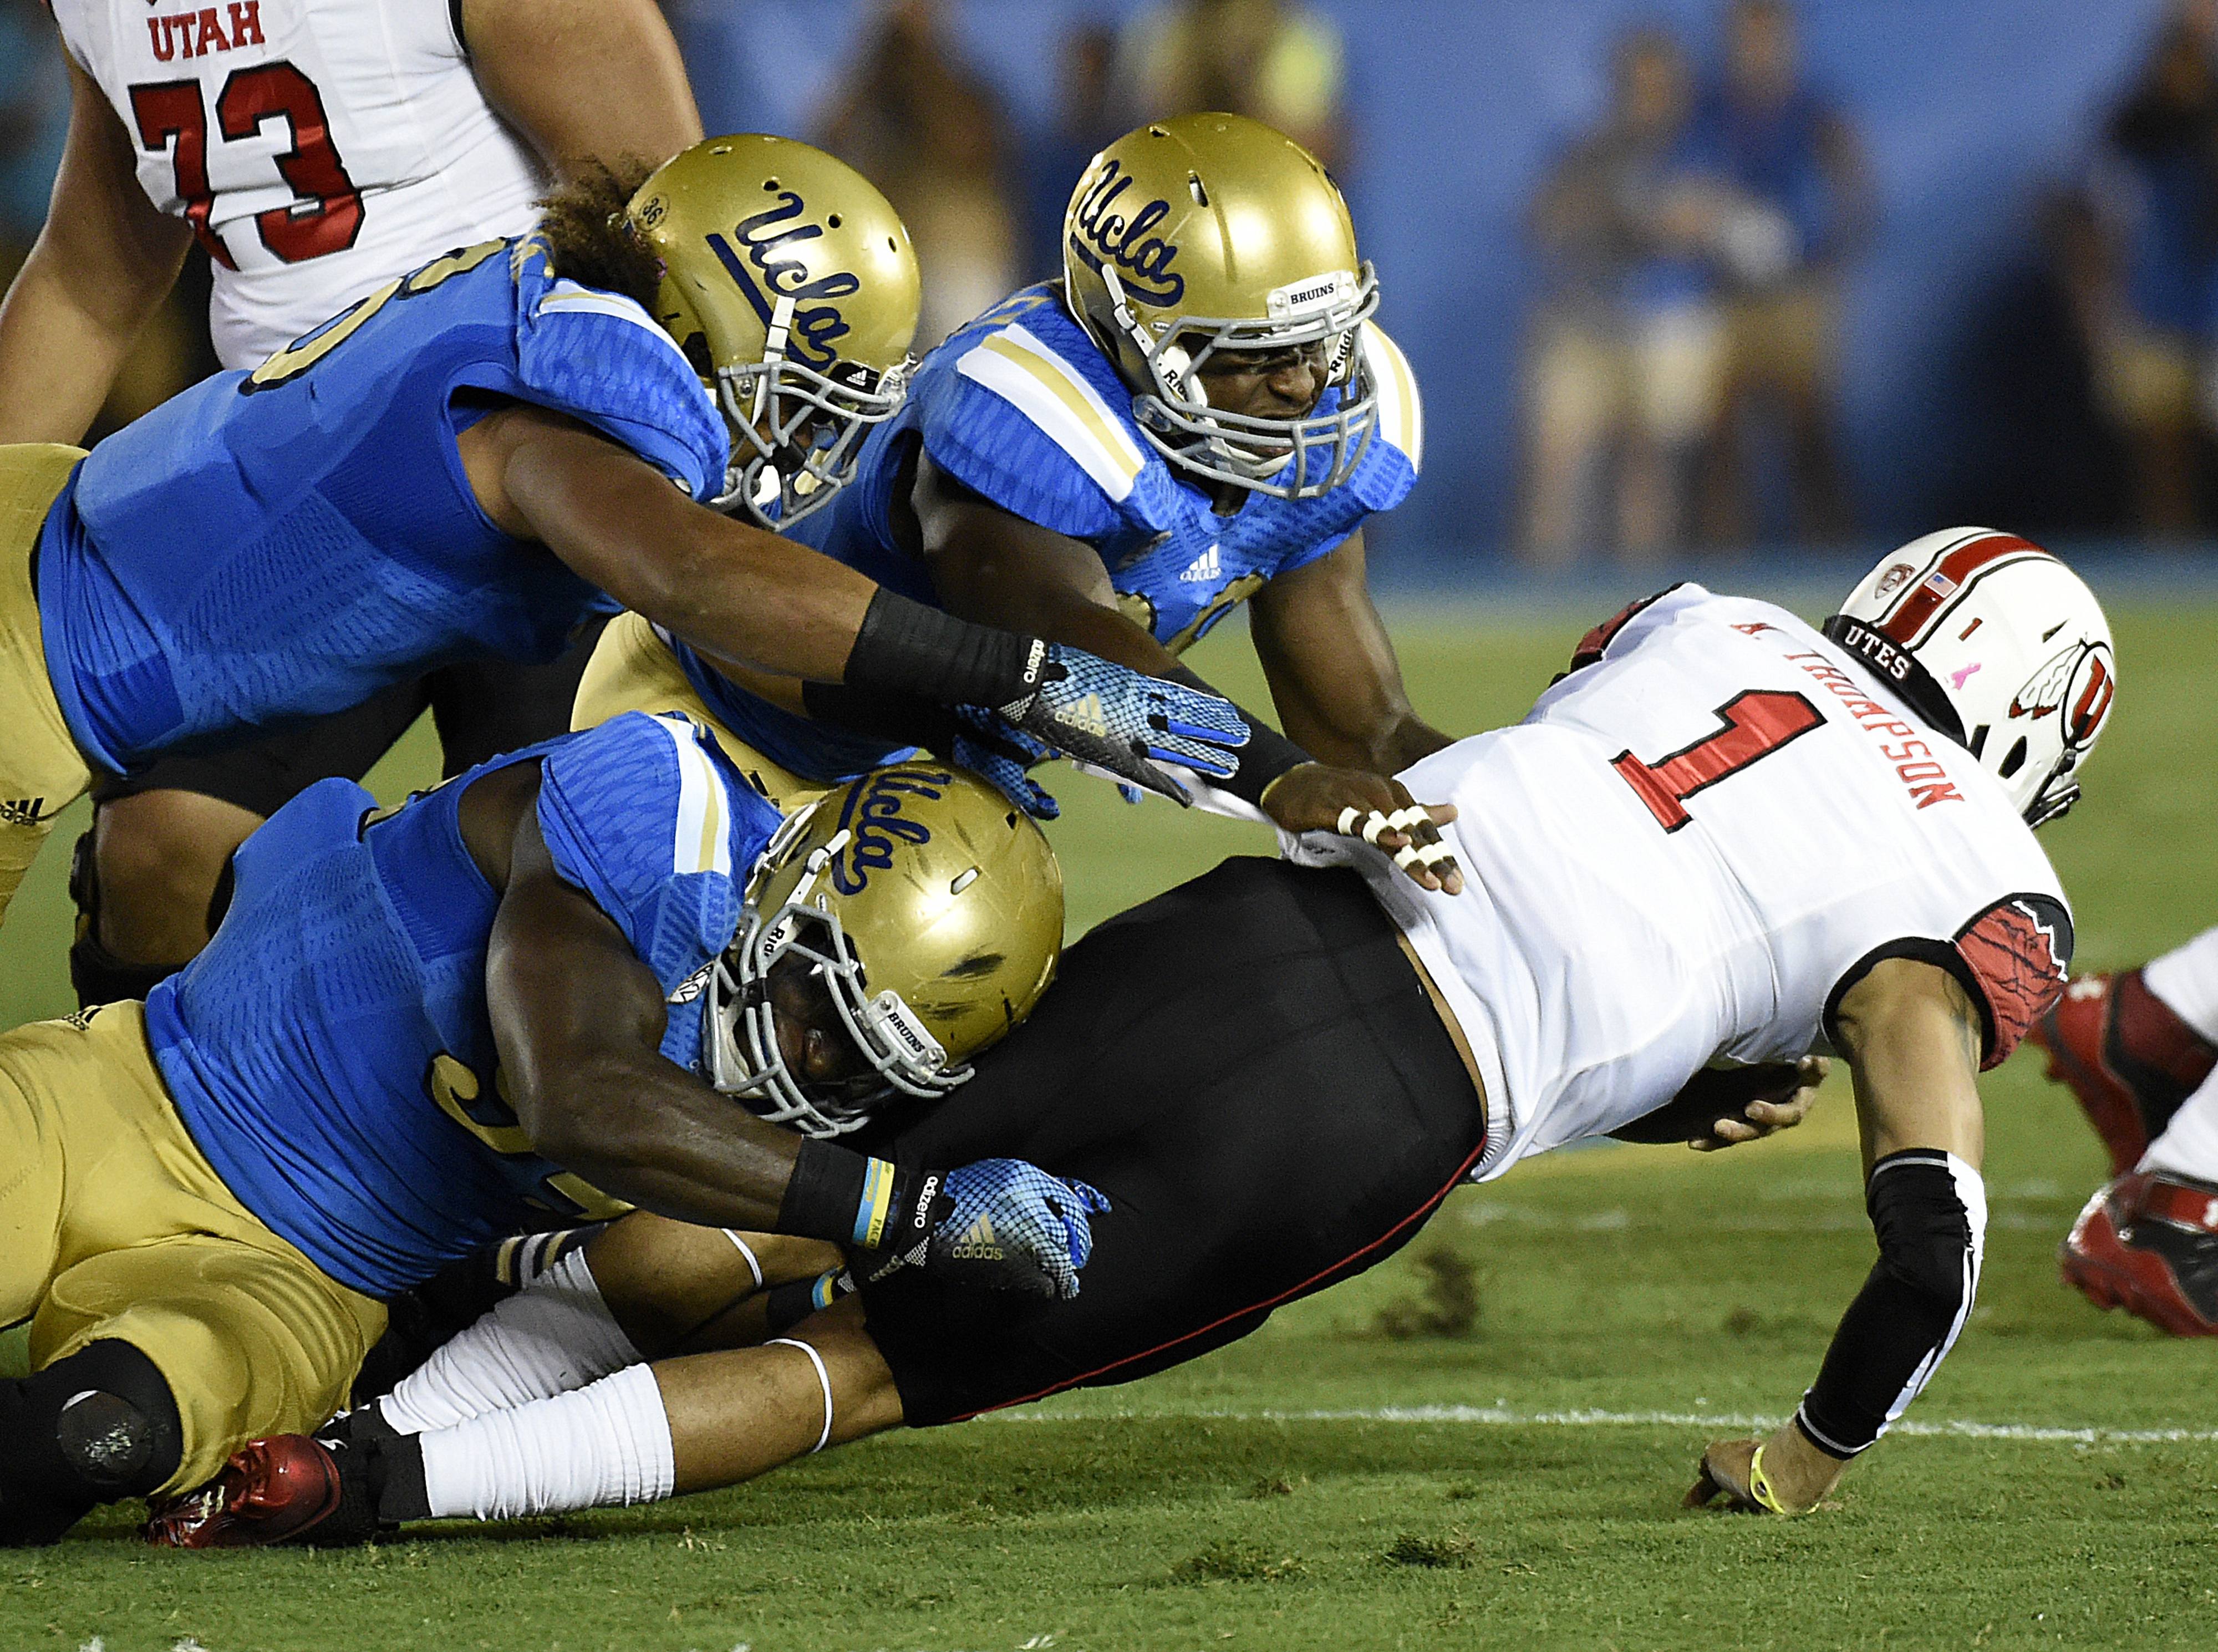 The Bruins will need to do this to Marcus Mariota a lot on Saturday.